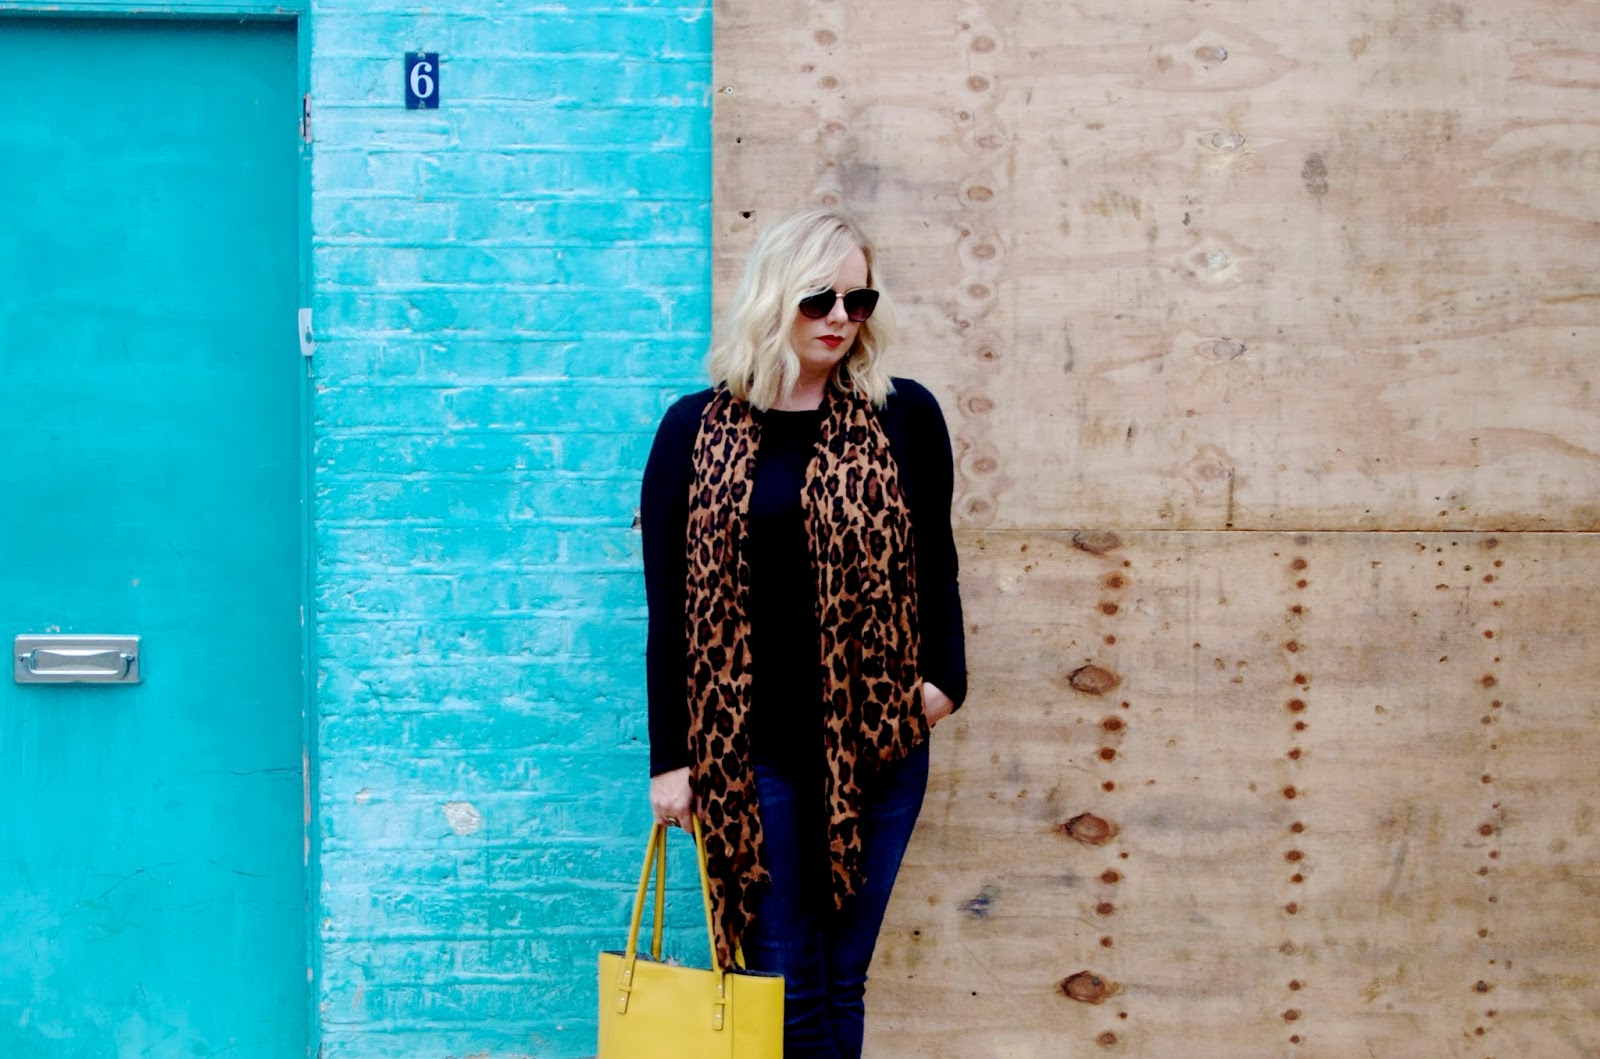 Leopard Print Scarf and long sleeve black t-shirt with jeans and a blue wall